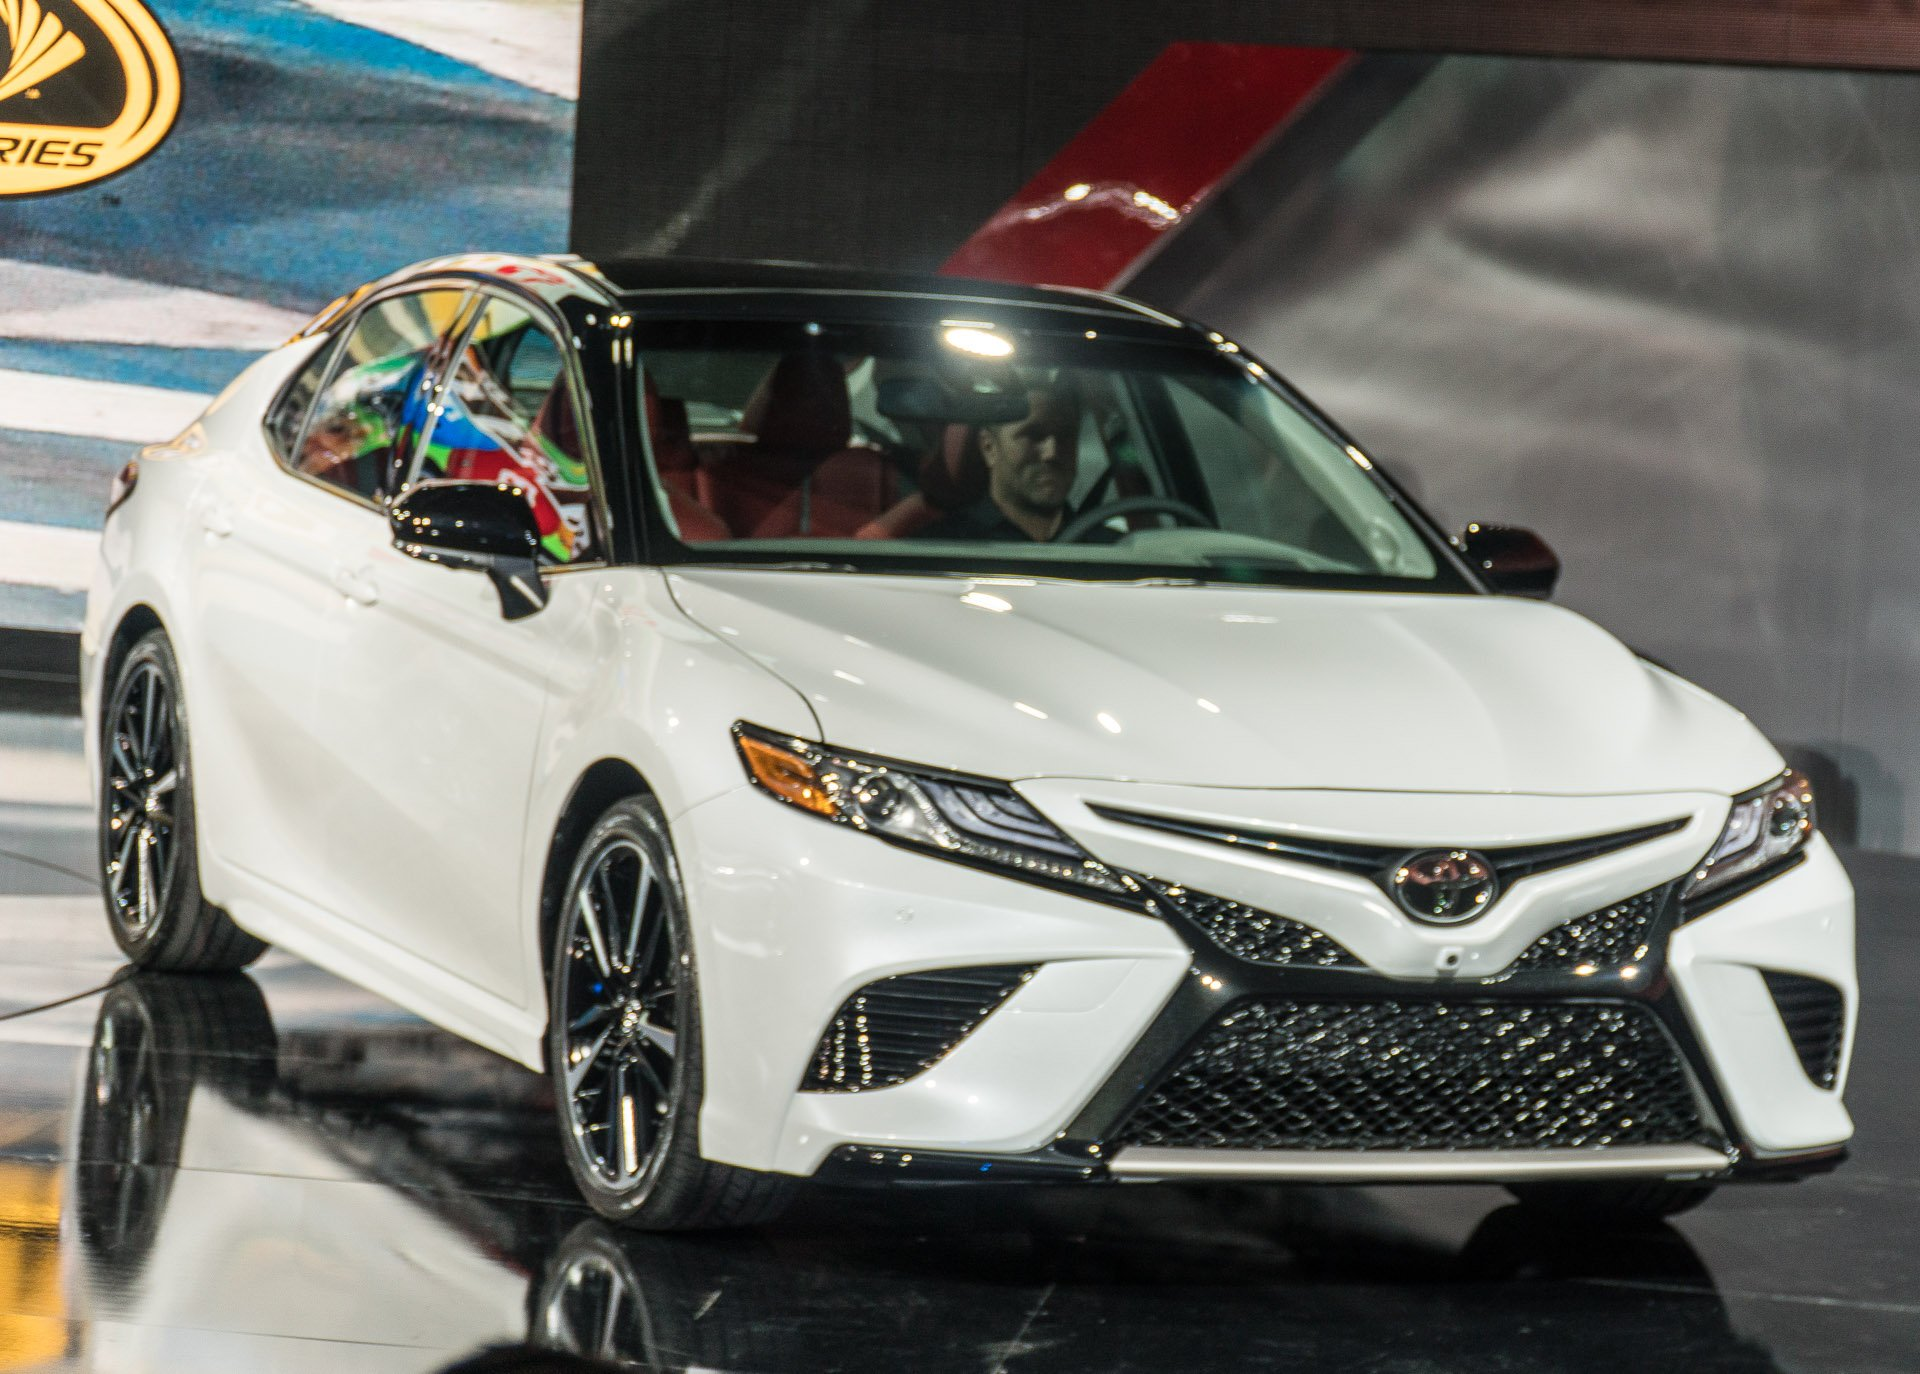 2018 toyota white camry with red interior. fine toyota while white cars arenu0027t usually my thing this black and combo with  the red sport interior looks pretty awesome inside 2018 toyota camry 8